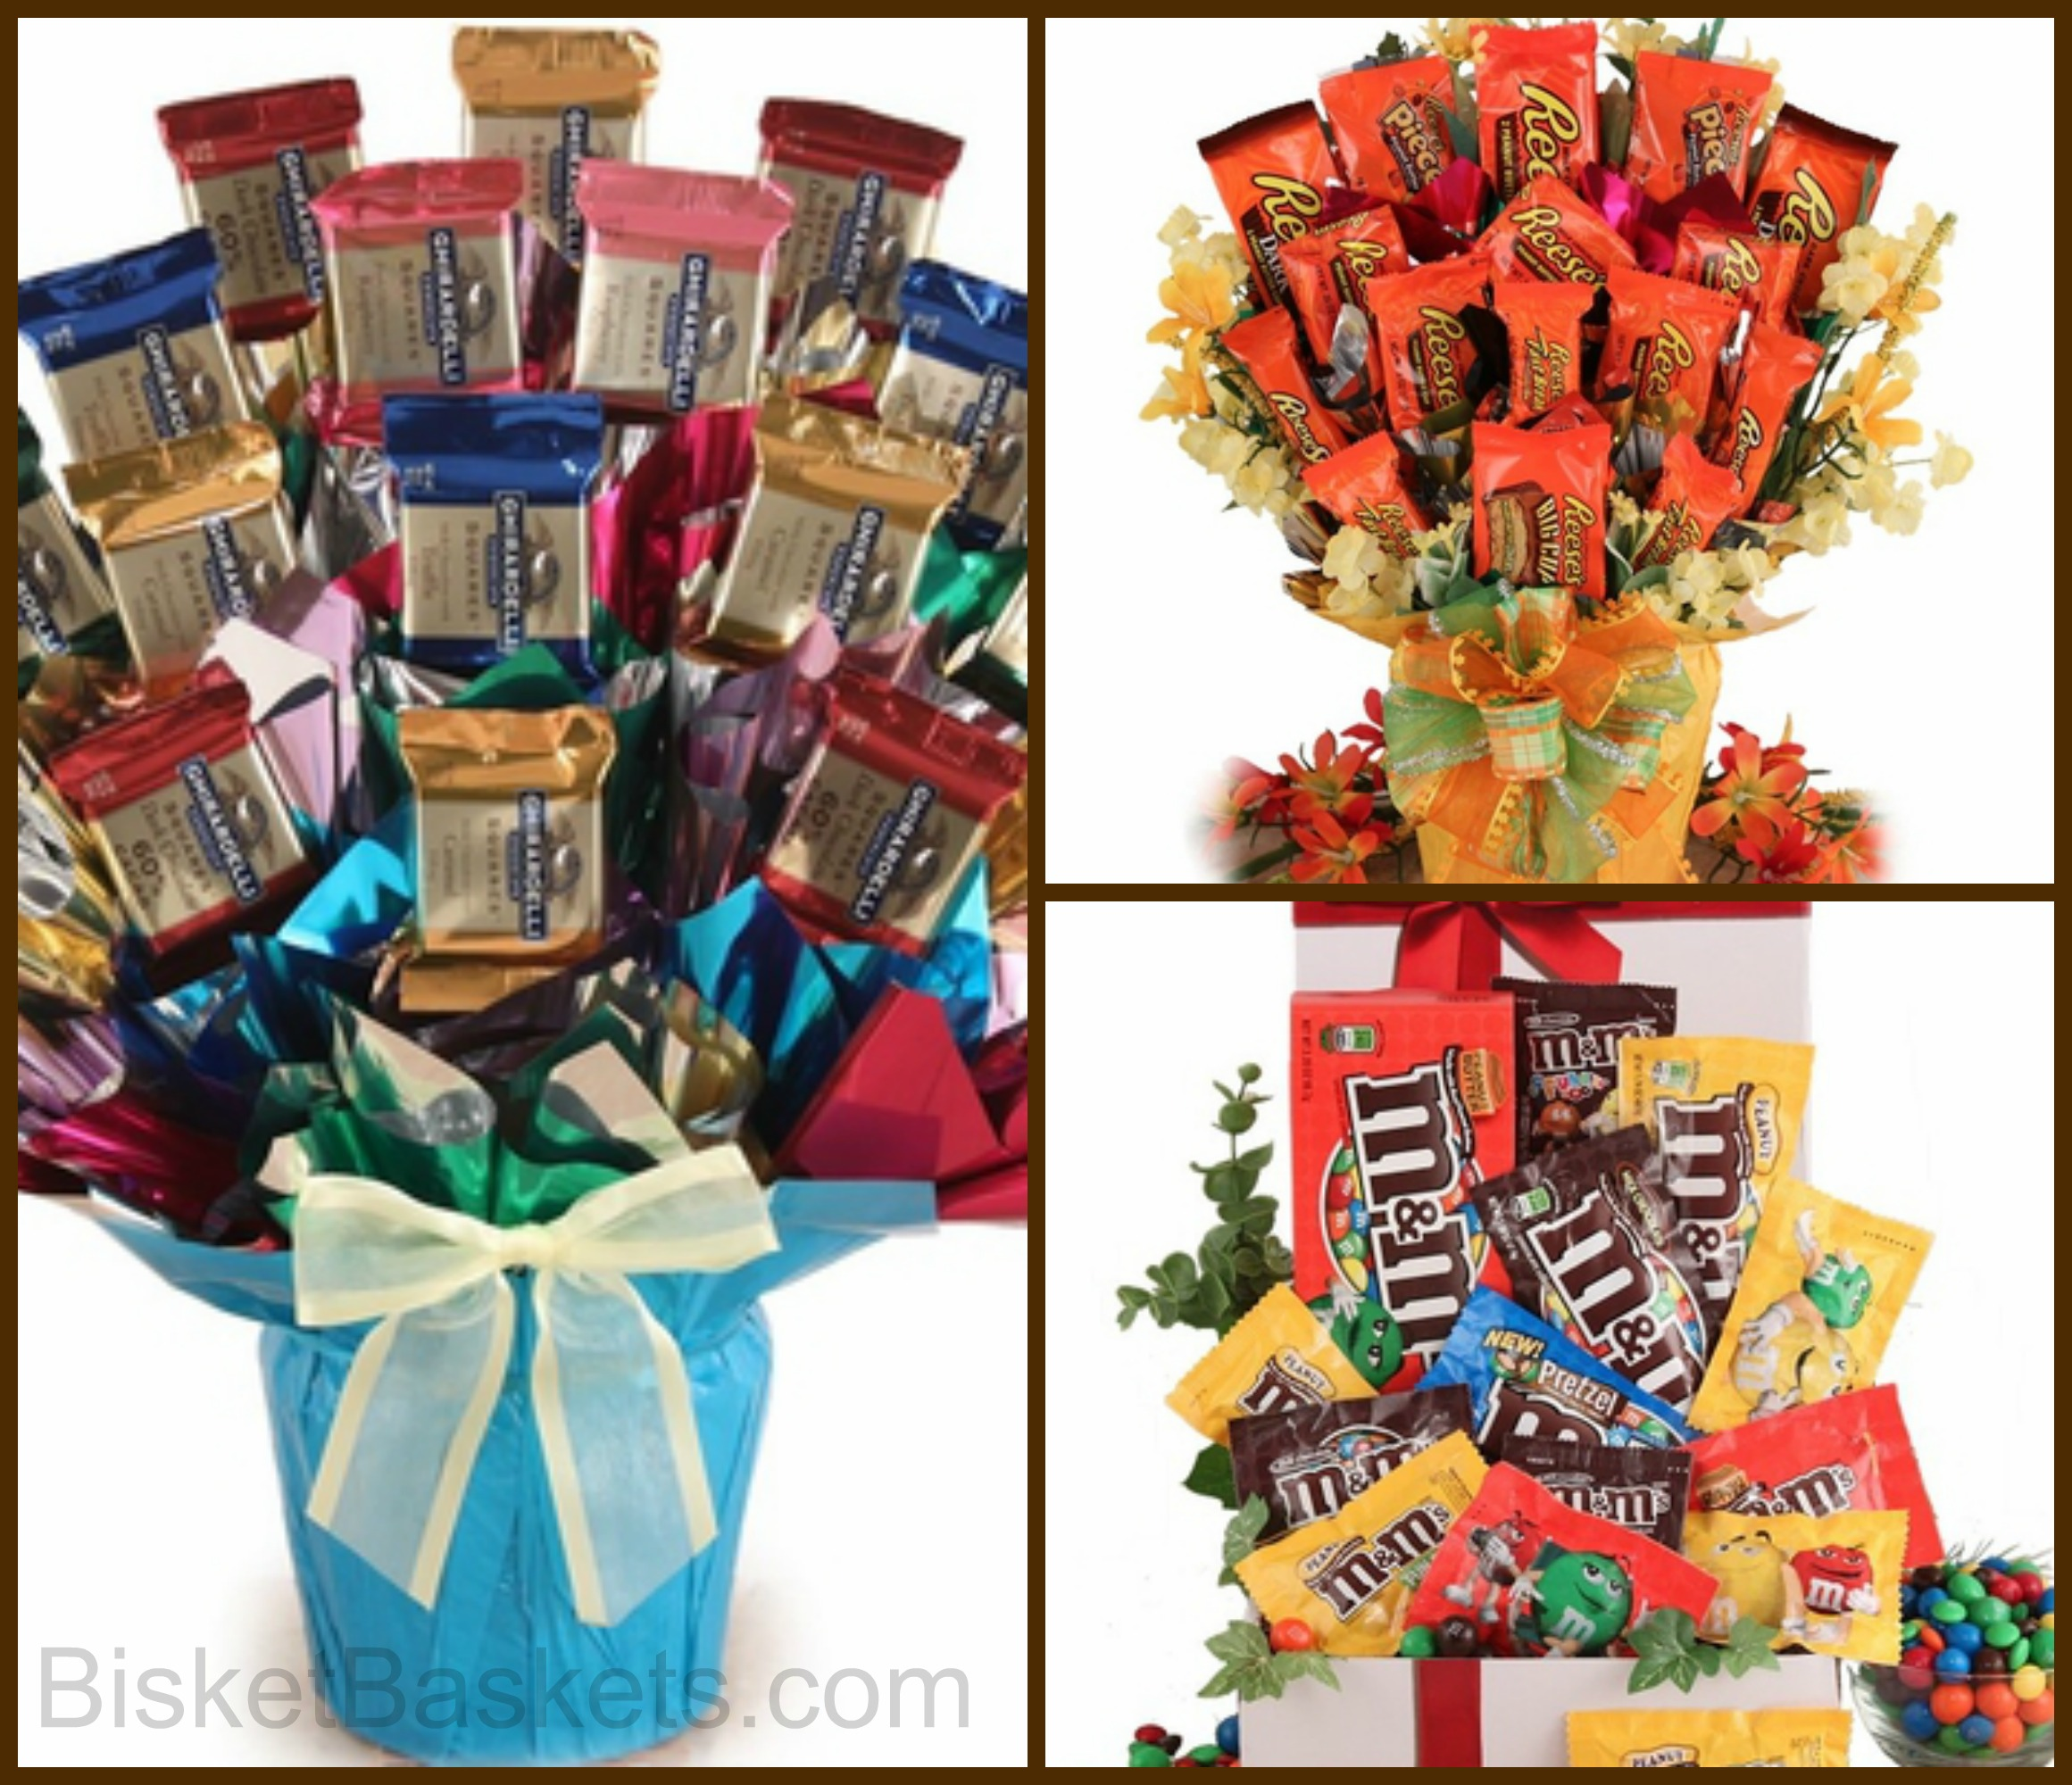 Gourmet easter baskets whether youd like to surprise that special someone with the perfect gift or deliver a delicious care package to a friend you simply cannot go wrong with negle Gallery